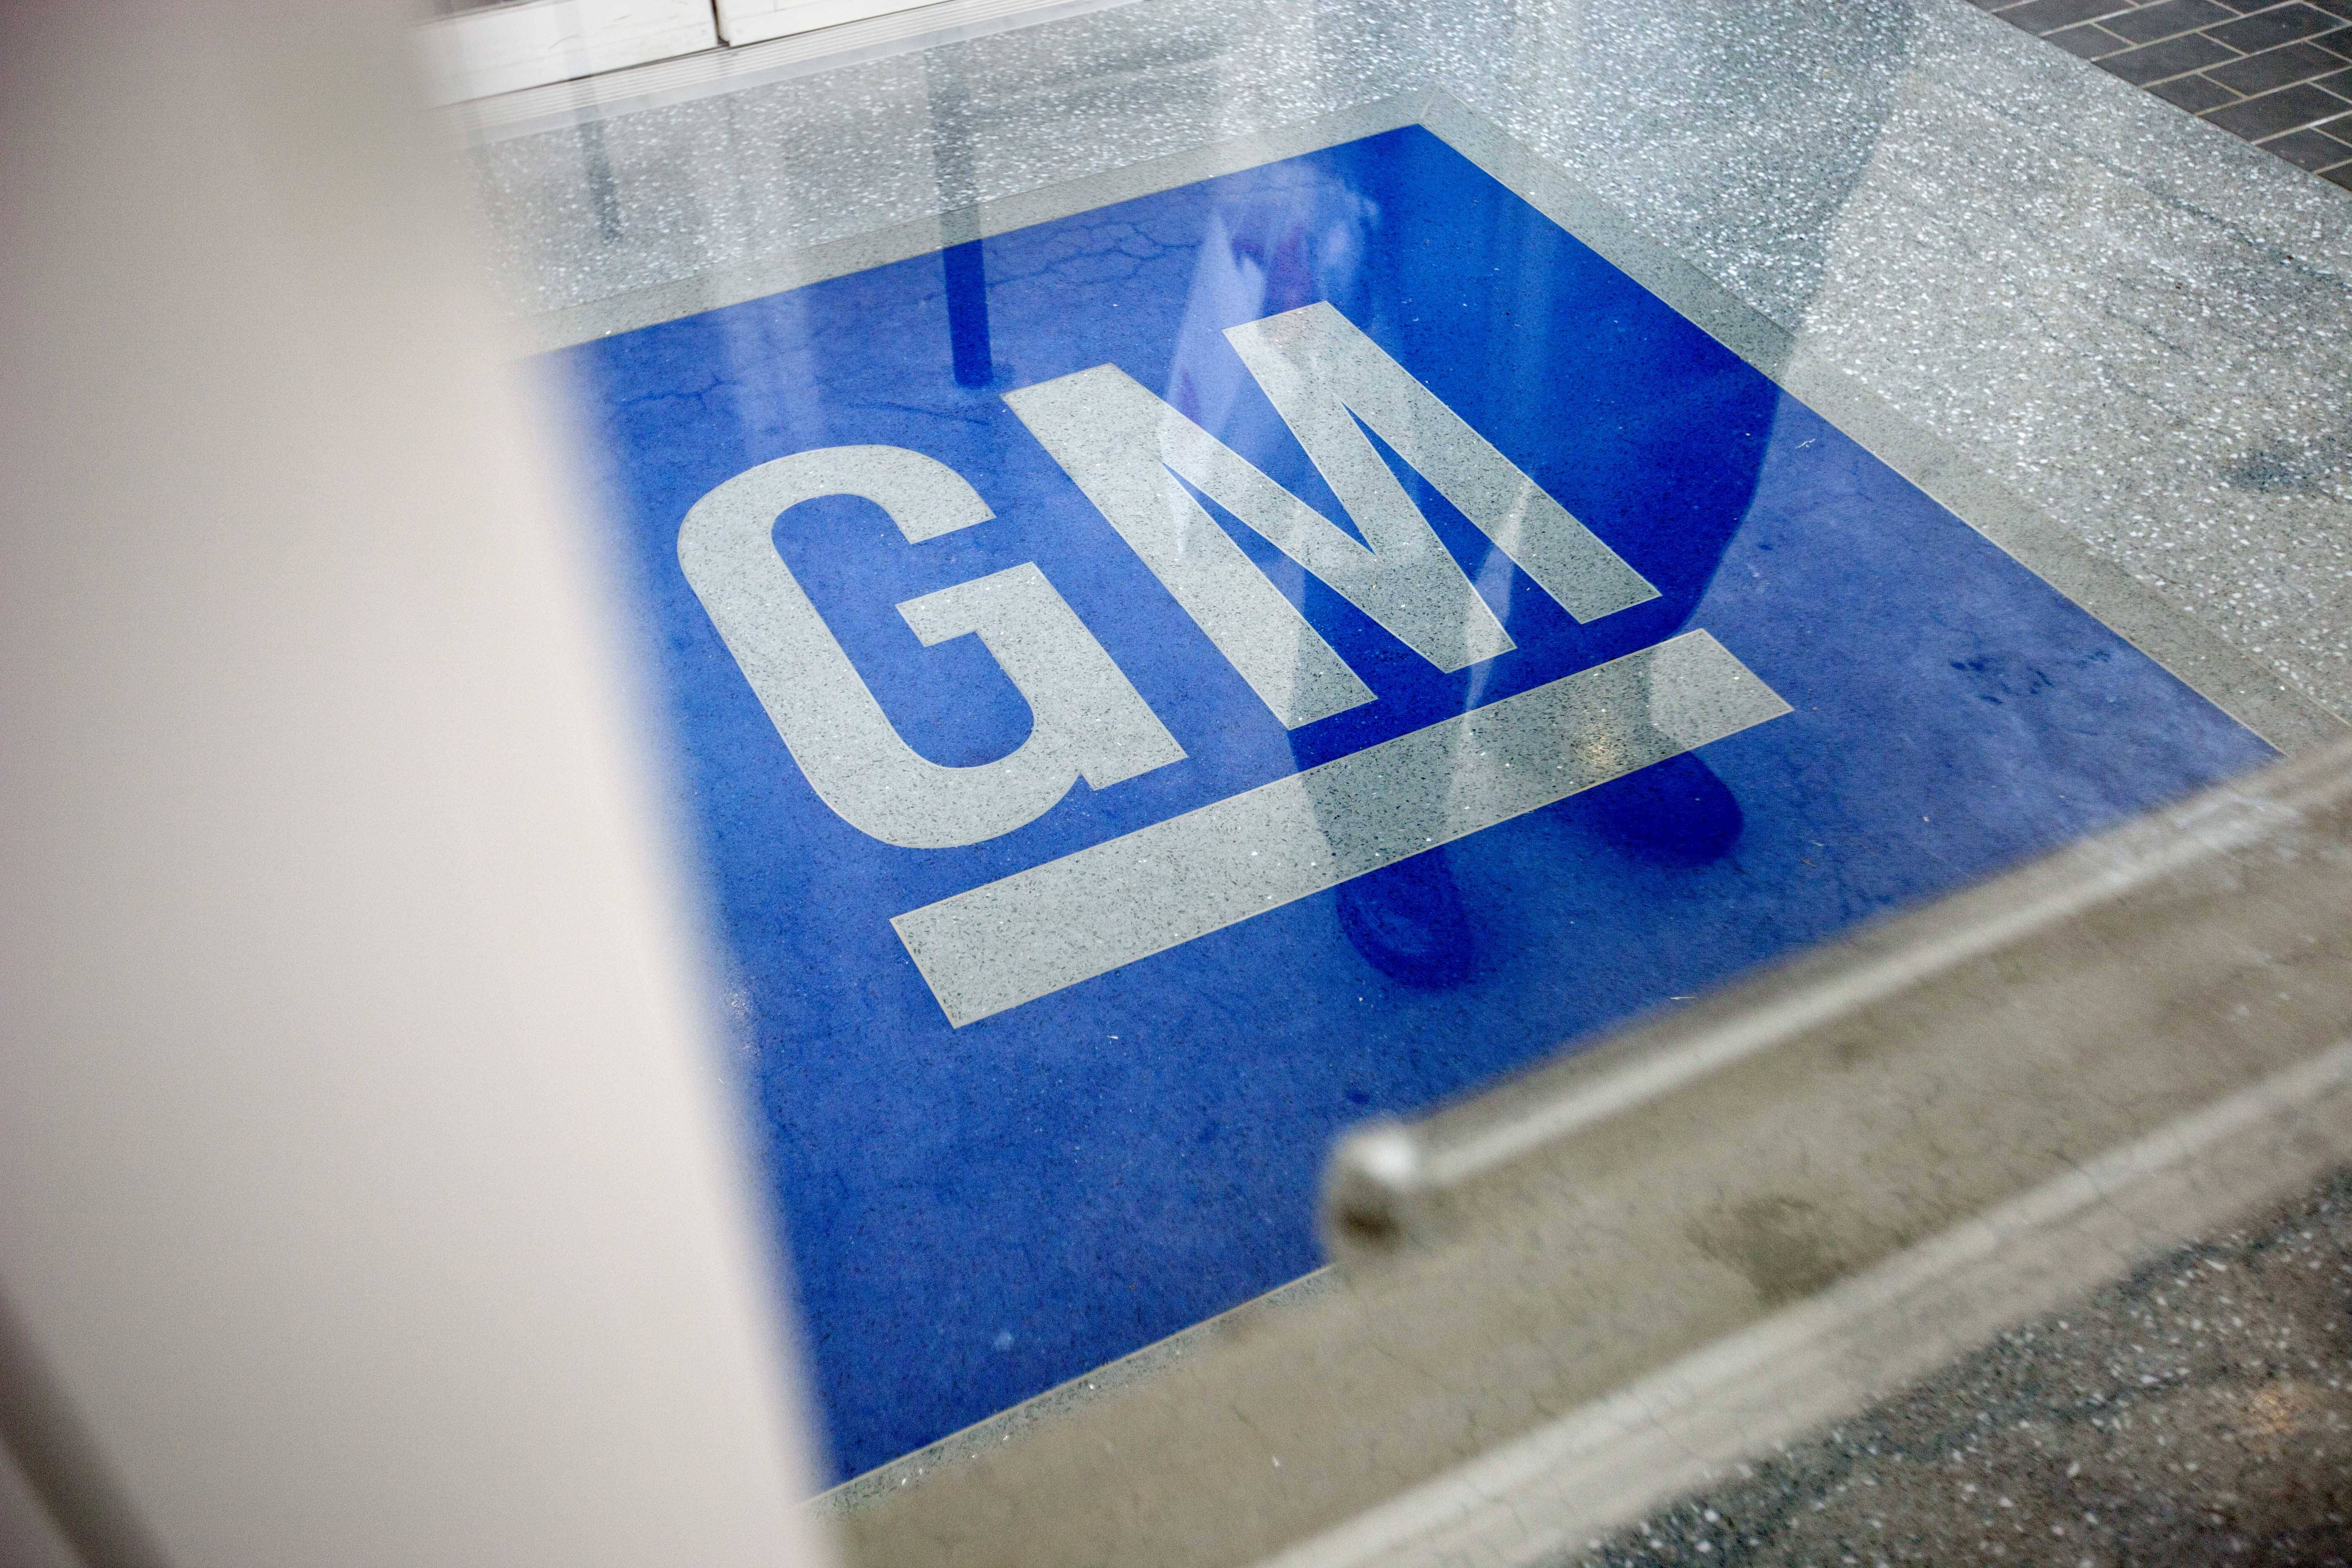 U.S. safety regulators have fined General Motors $35 million for delays in recalling small cars with faulty ignition switches that are linked to at least 13 deaths.